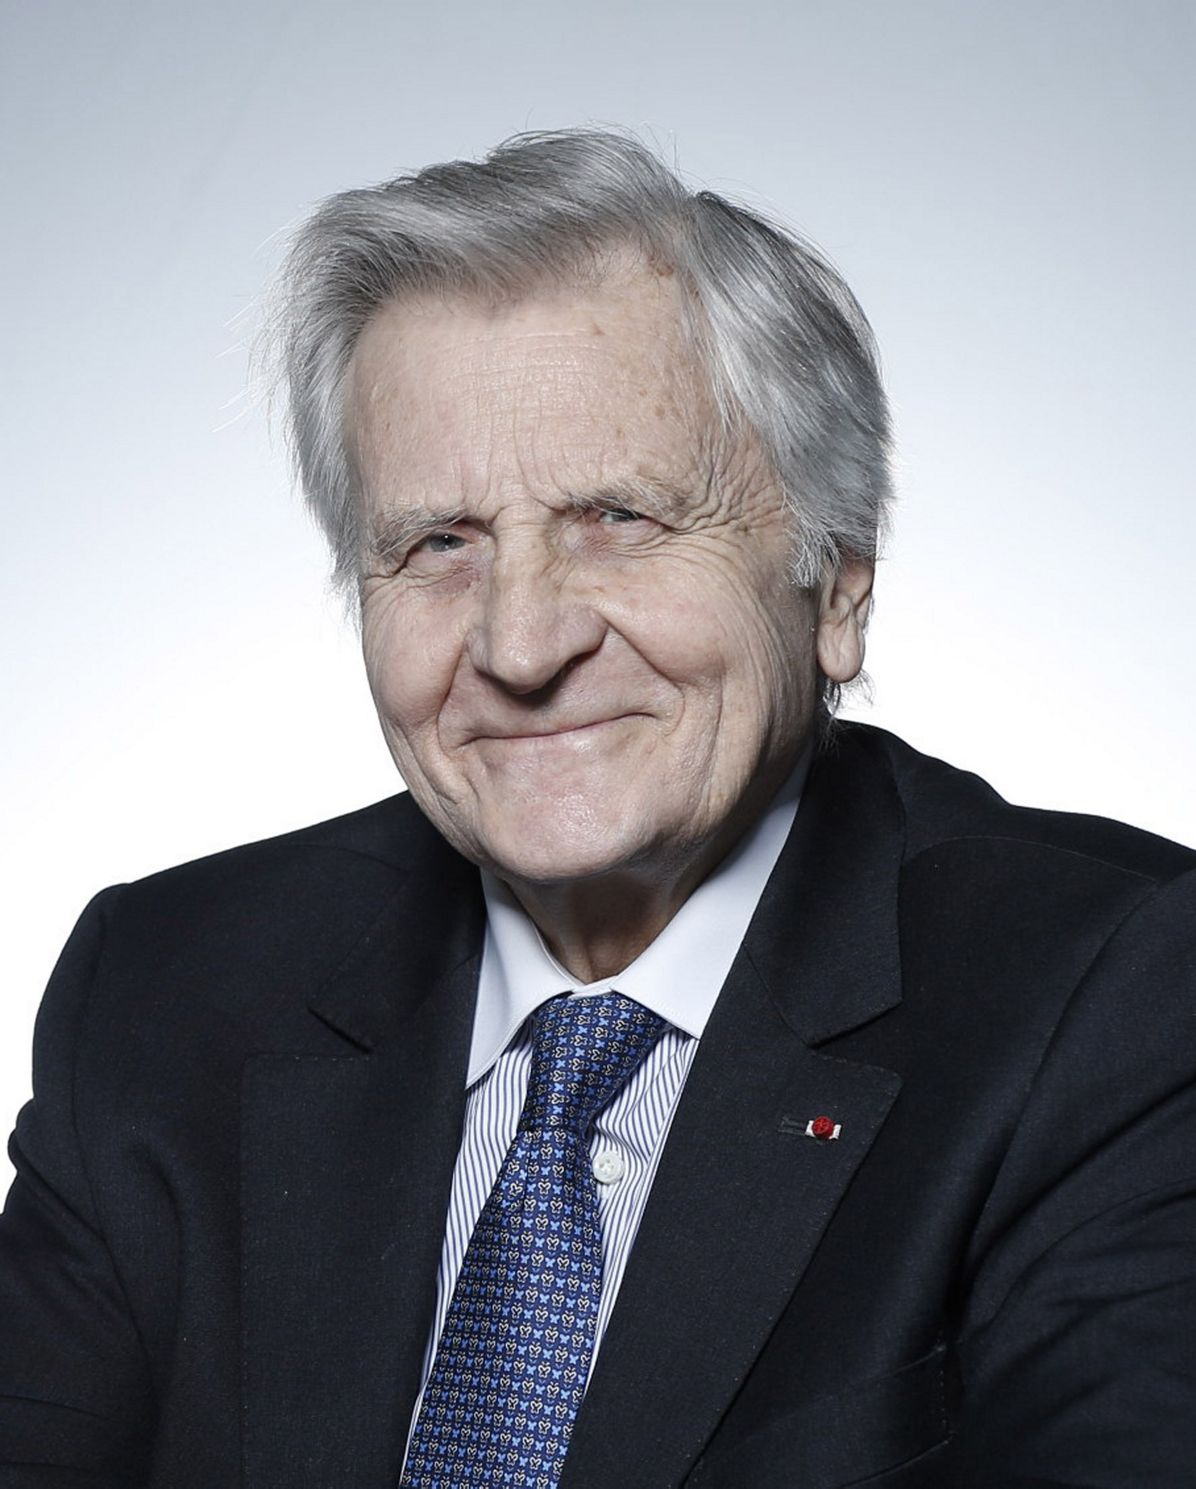 Jean-Claude Trichet, French